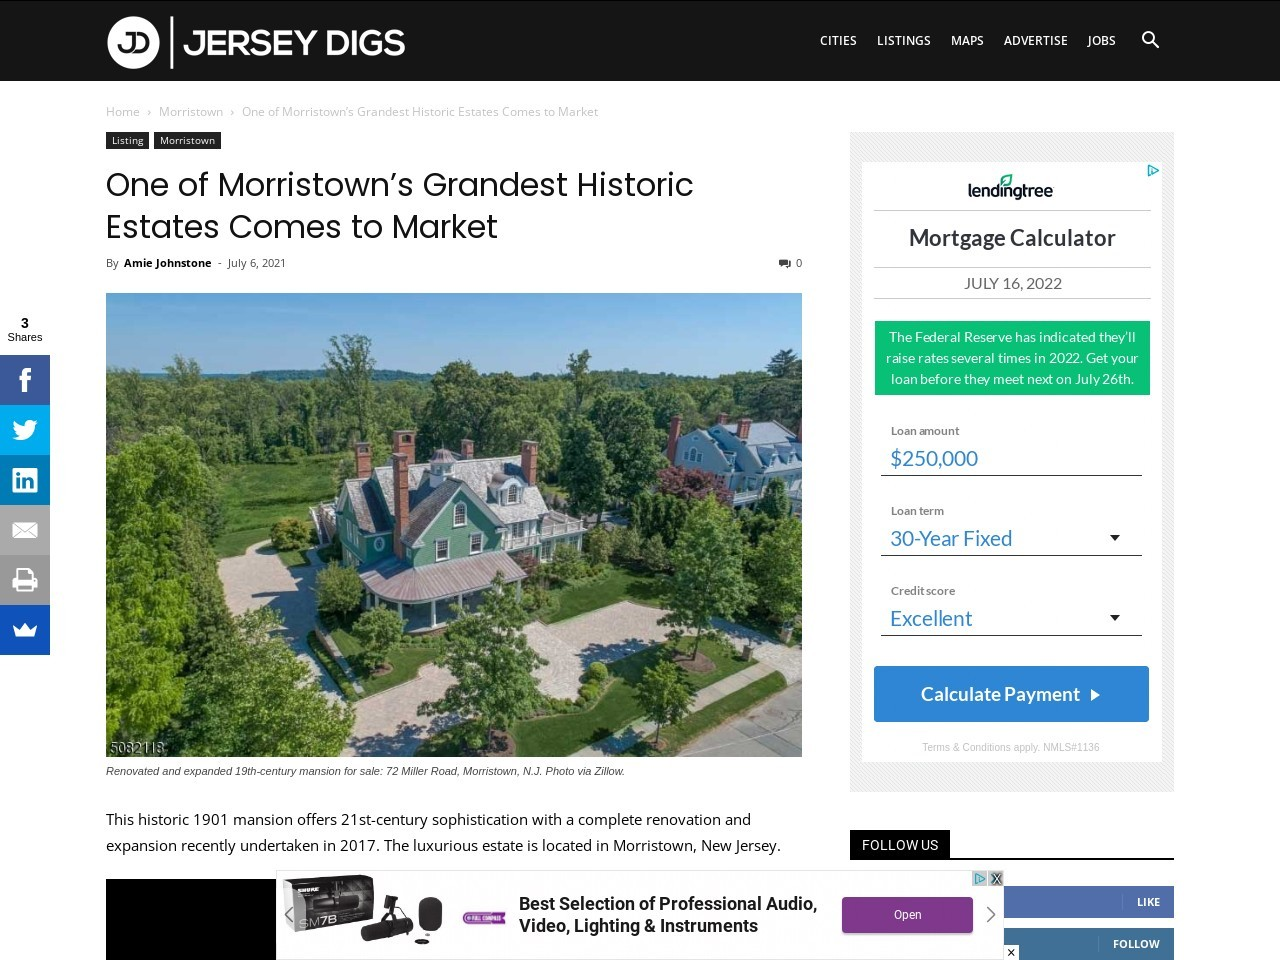 One of Morristown's Grandest Historic Estates Comes to Market